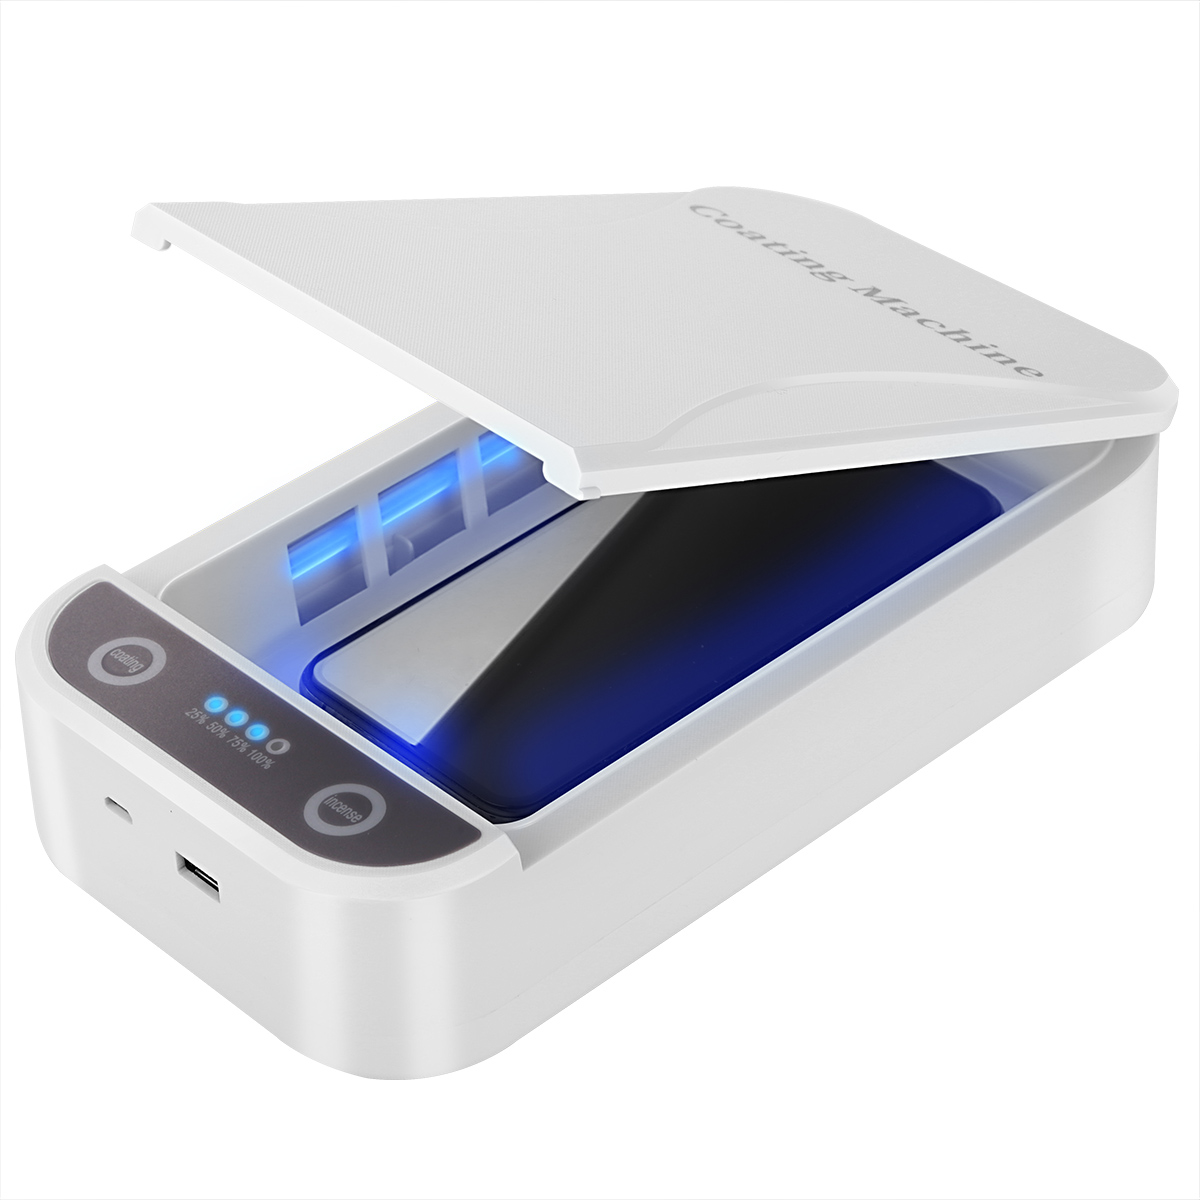 Portable UV Sterilizer Cellphone Toothbrush Sanitizer Disinfection Box With USB Cable Dual UV Lights